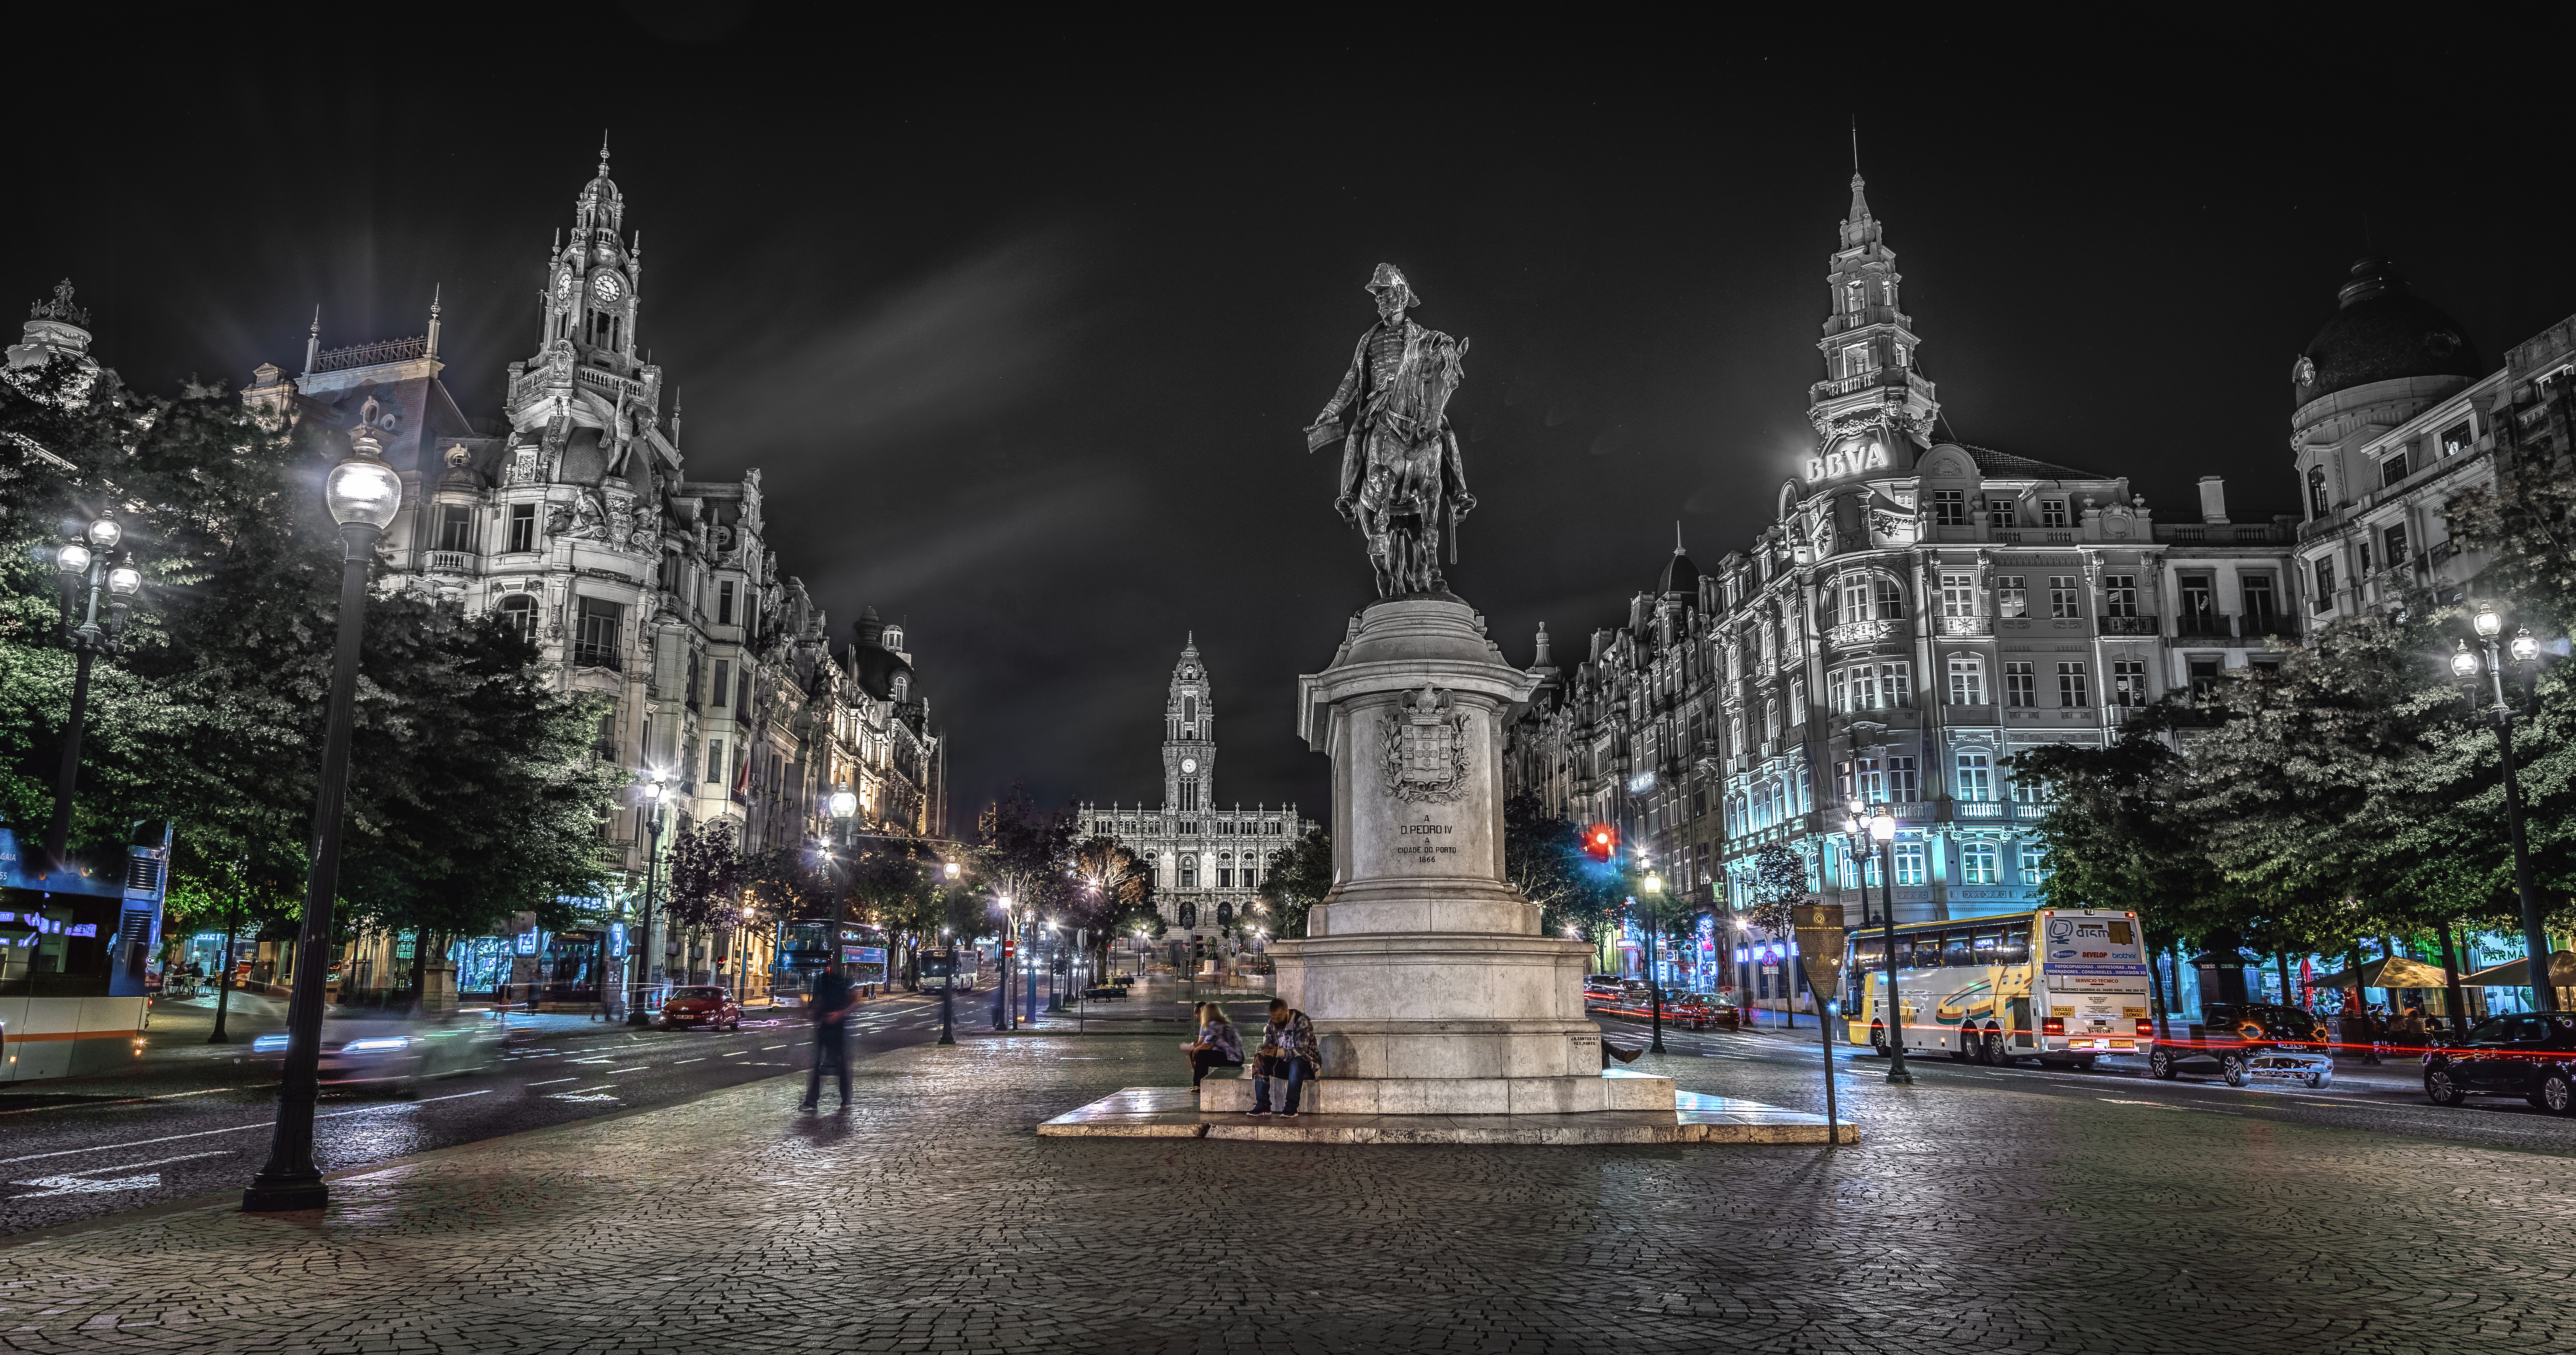 Desktop Wallpapers Porto Portugal Monuments Town square night time Cities Building 6144x3231 Oporto Night Houses